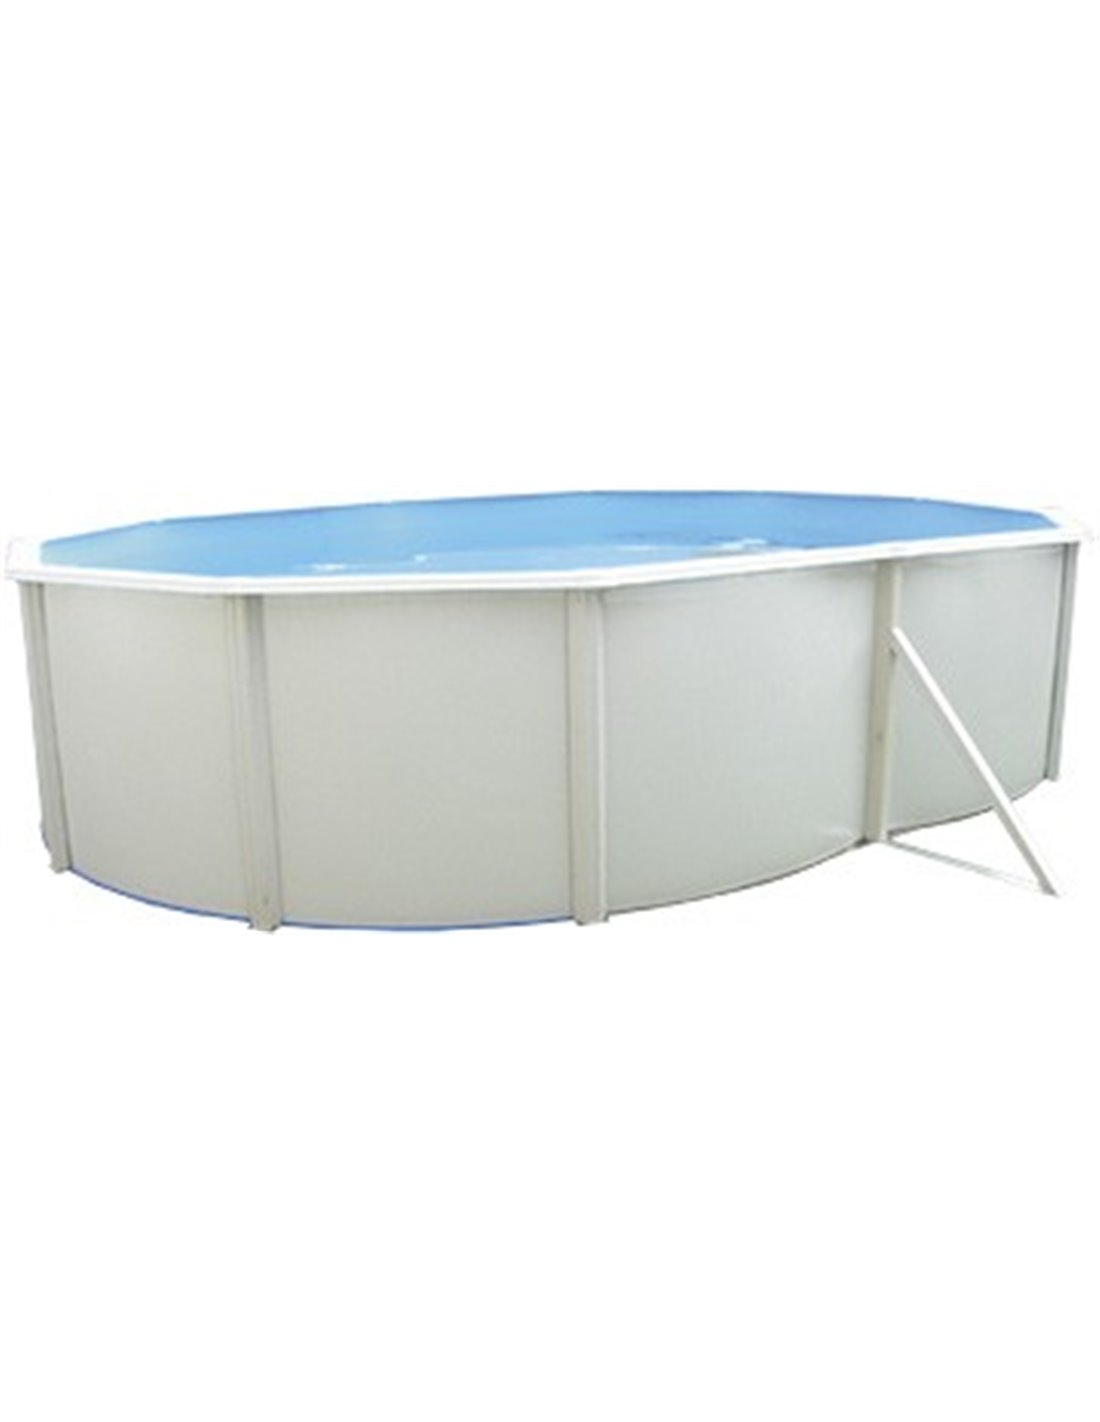 Piscina hinchable murcia for Aki piscinas hinchables